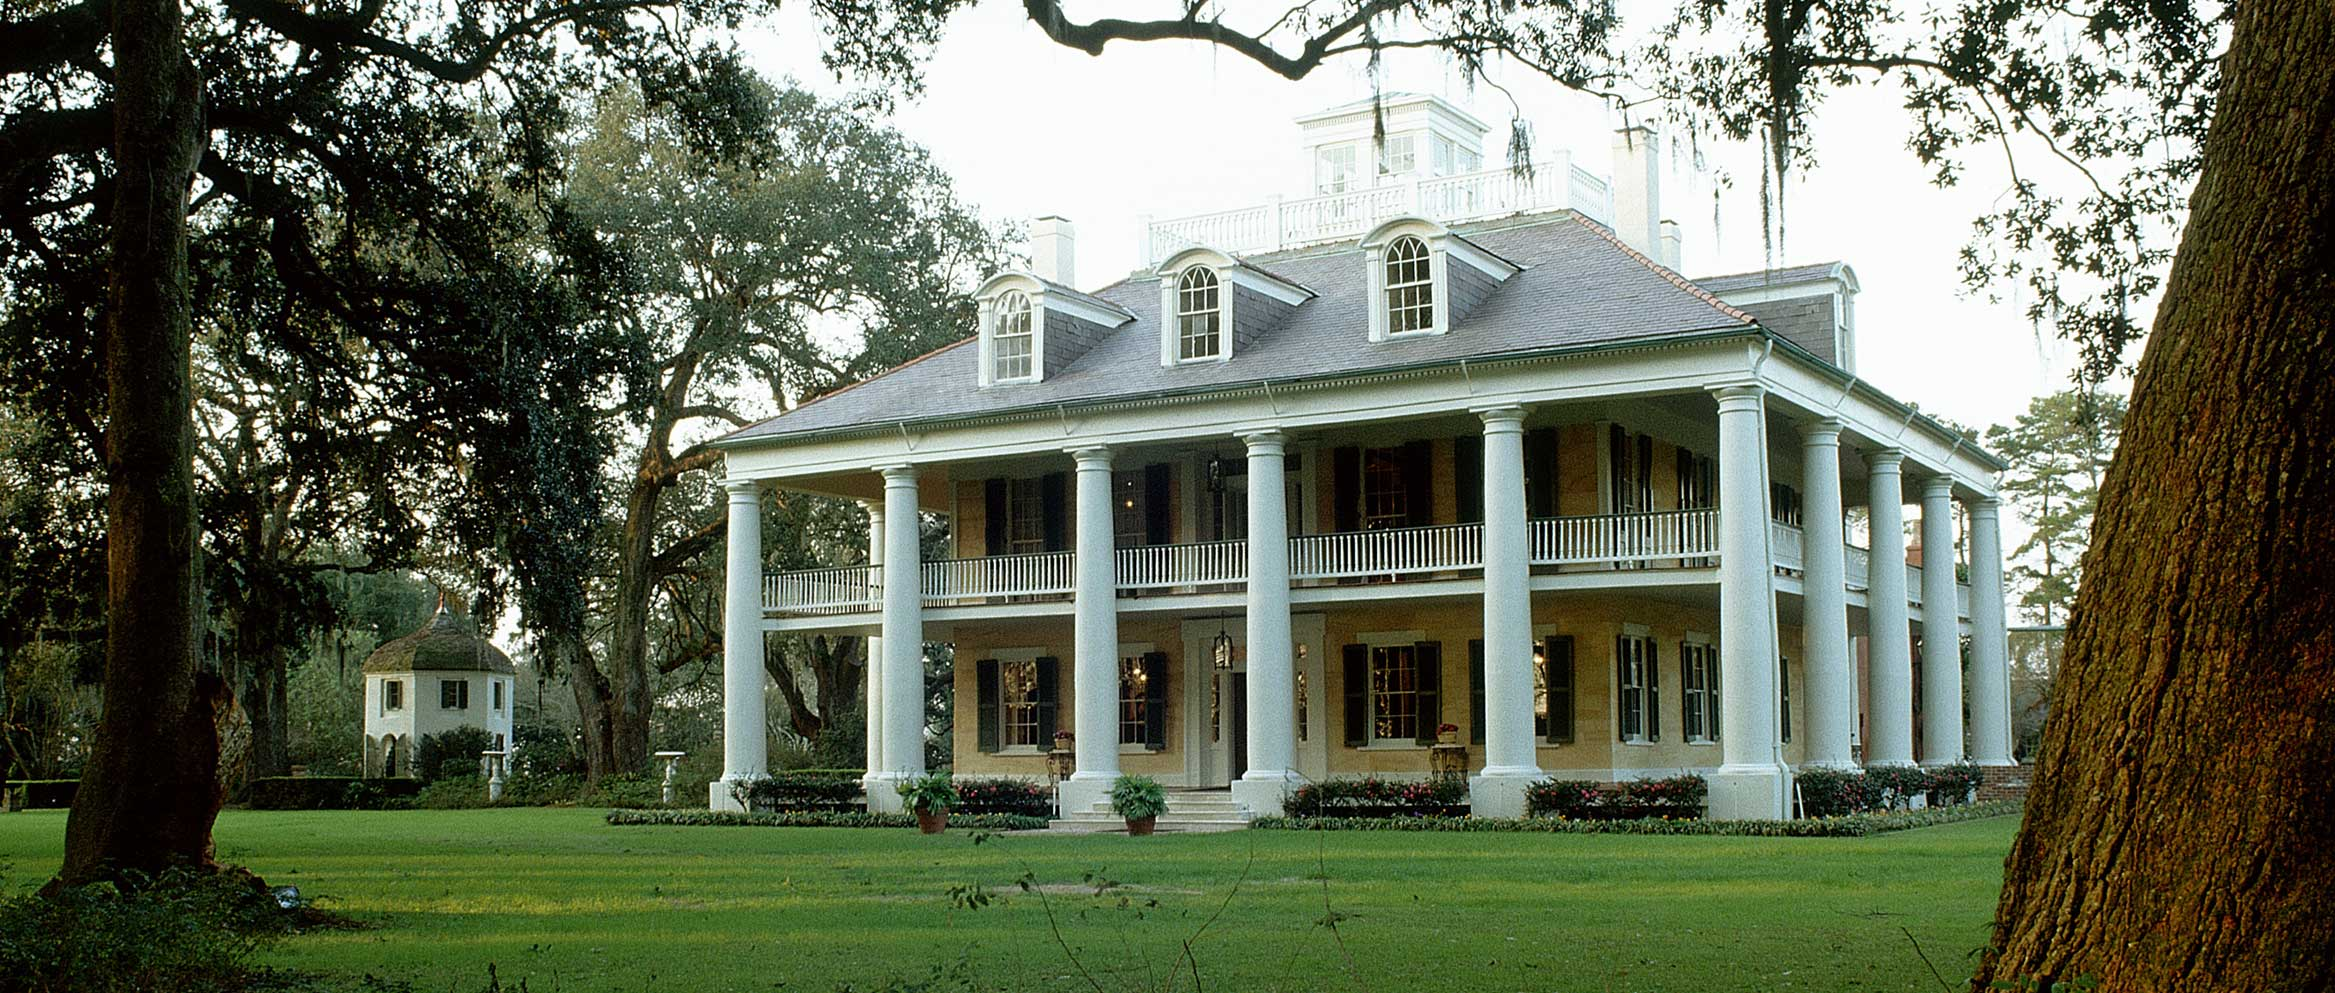 Southern plantation homes floor plans Southern plantation house plans